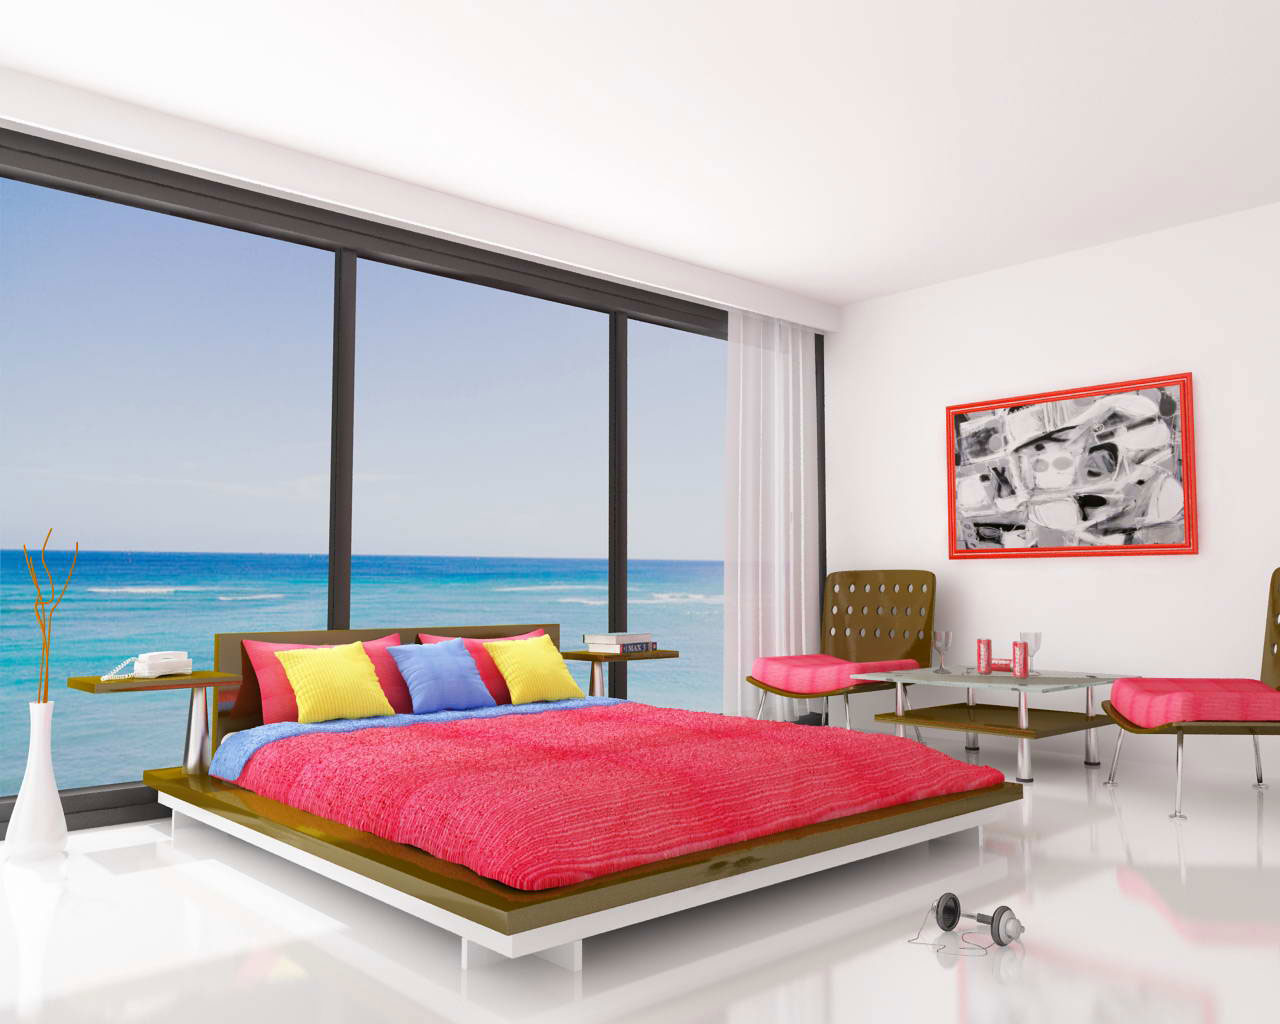 Simple bedroom designs for square rooms dream house for 3 bedroom beach house designs